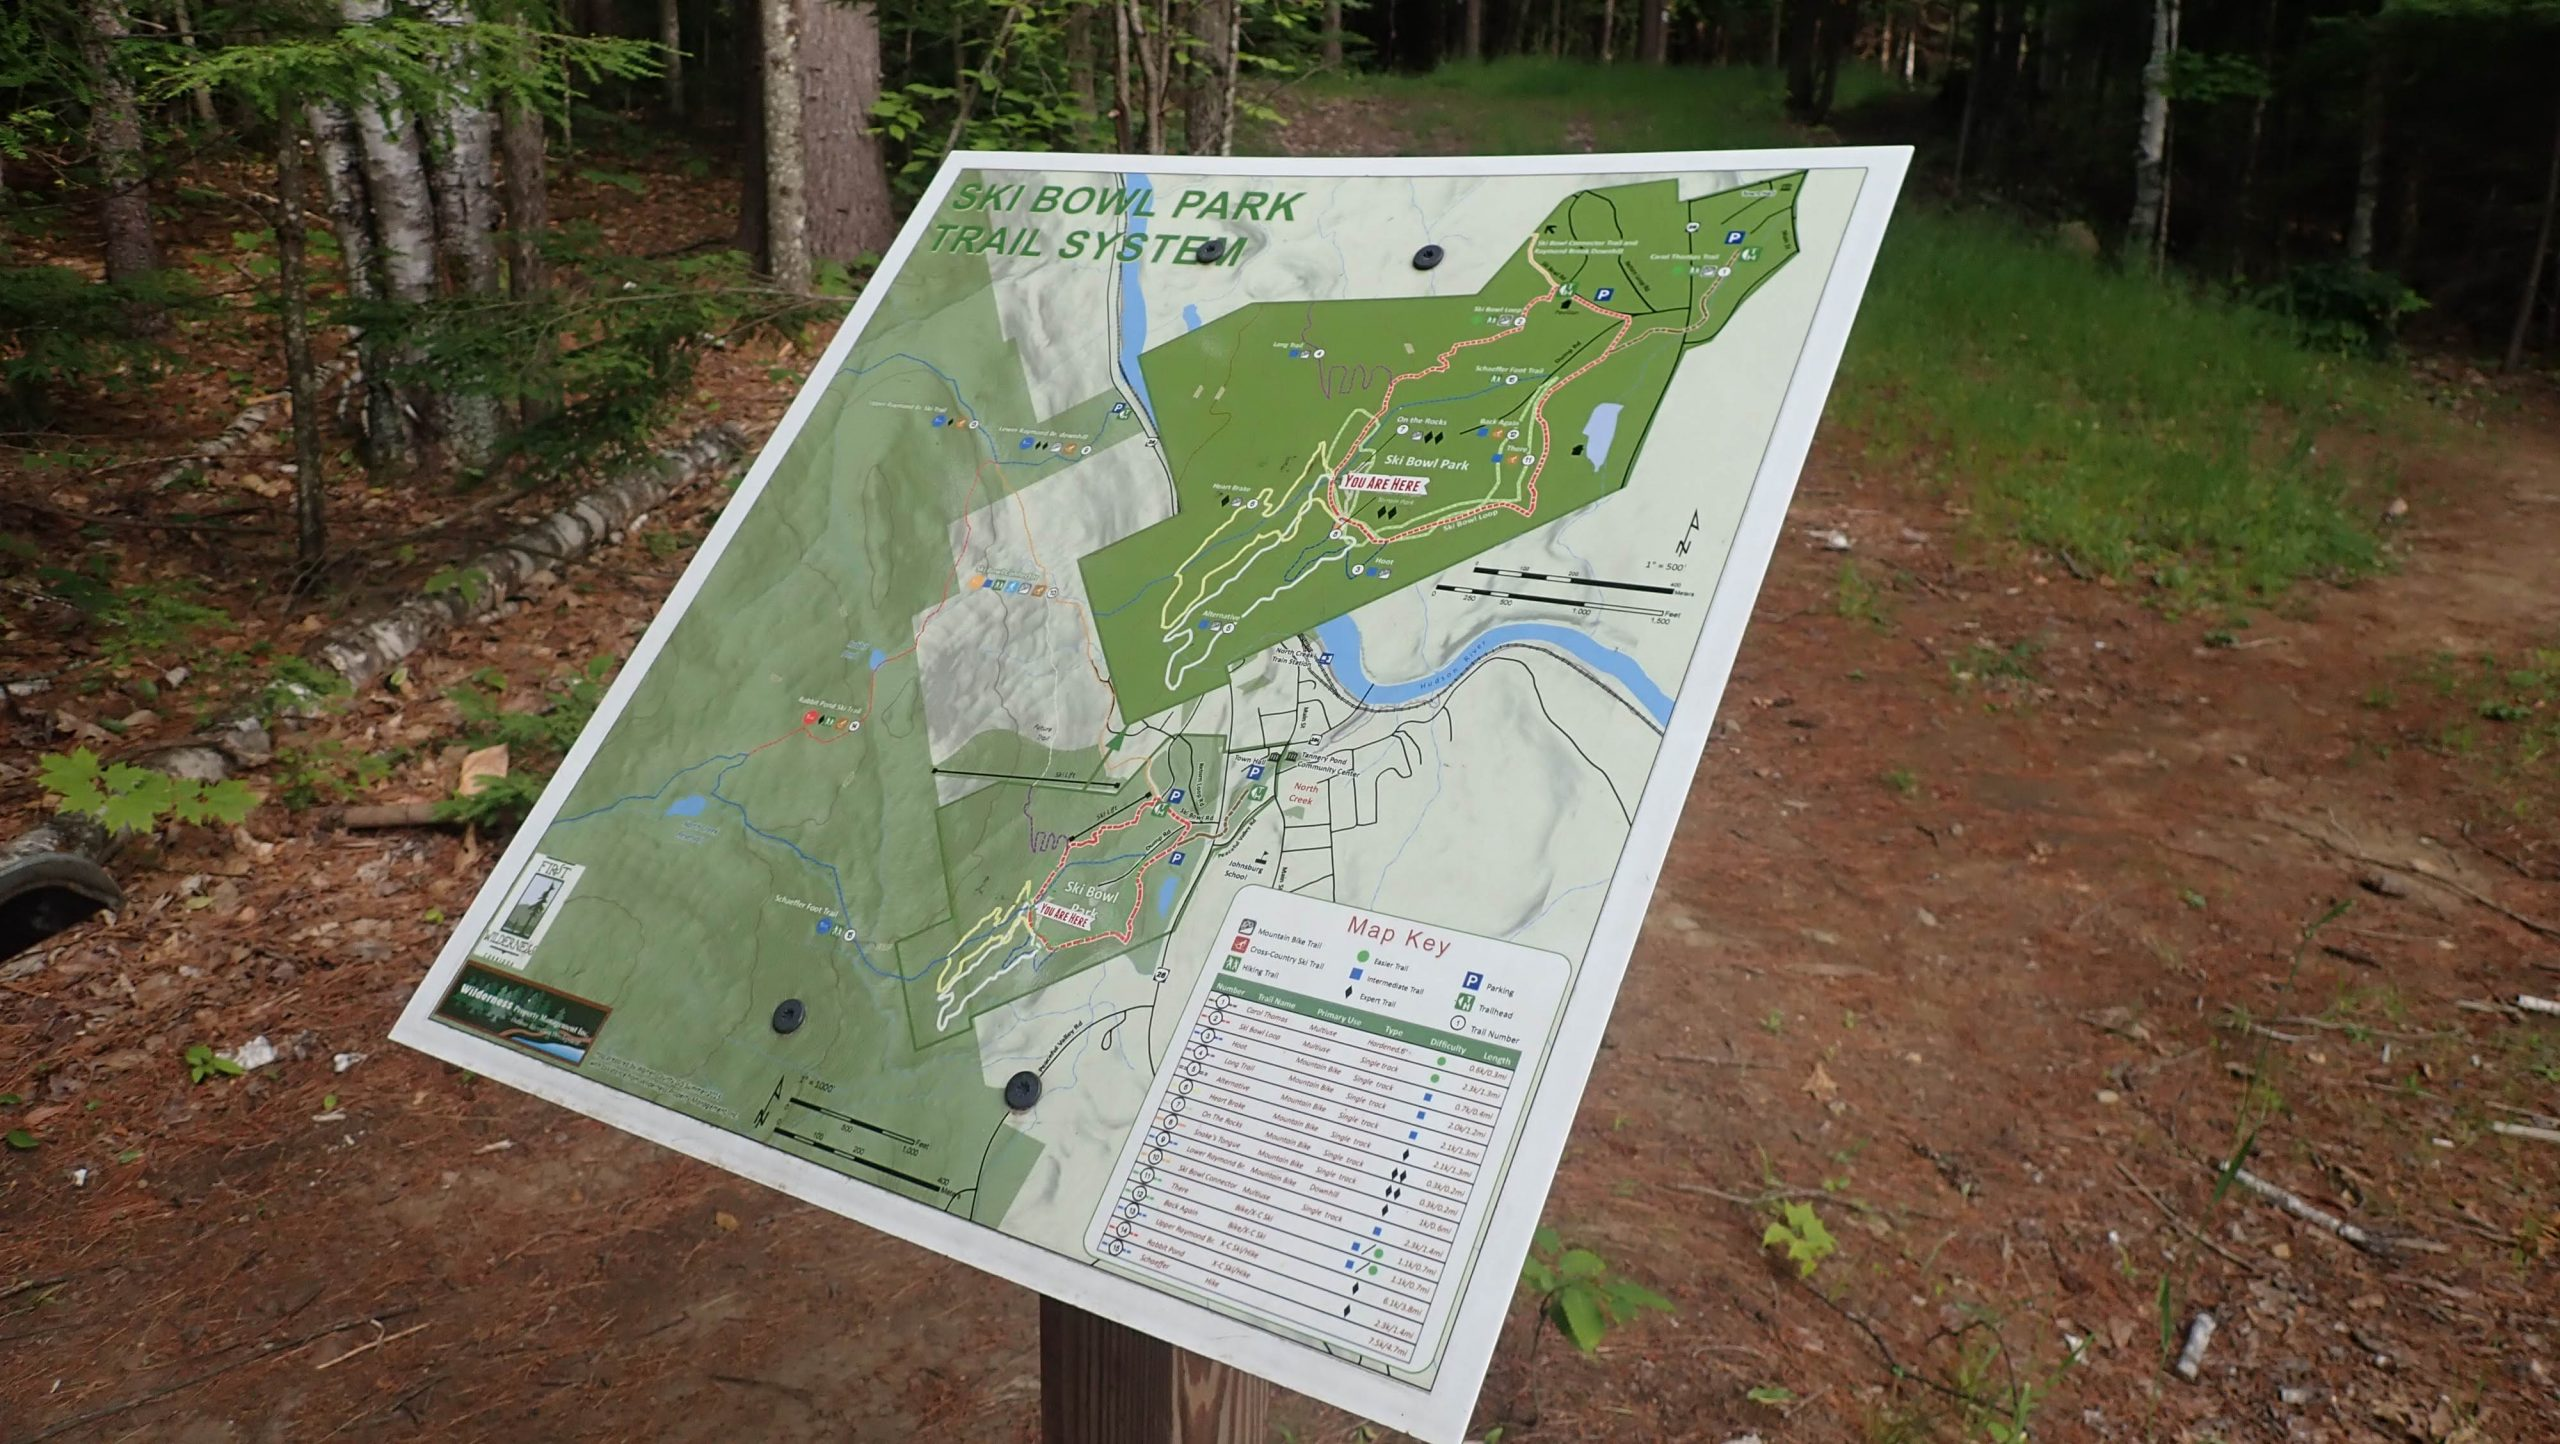 photo of Ski Bowl Park Trail System map in woods